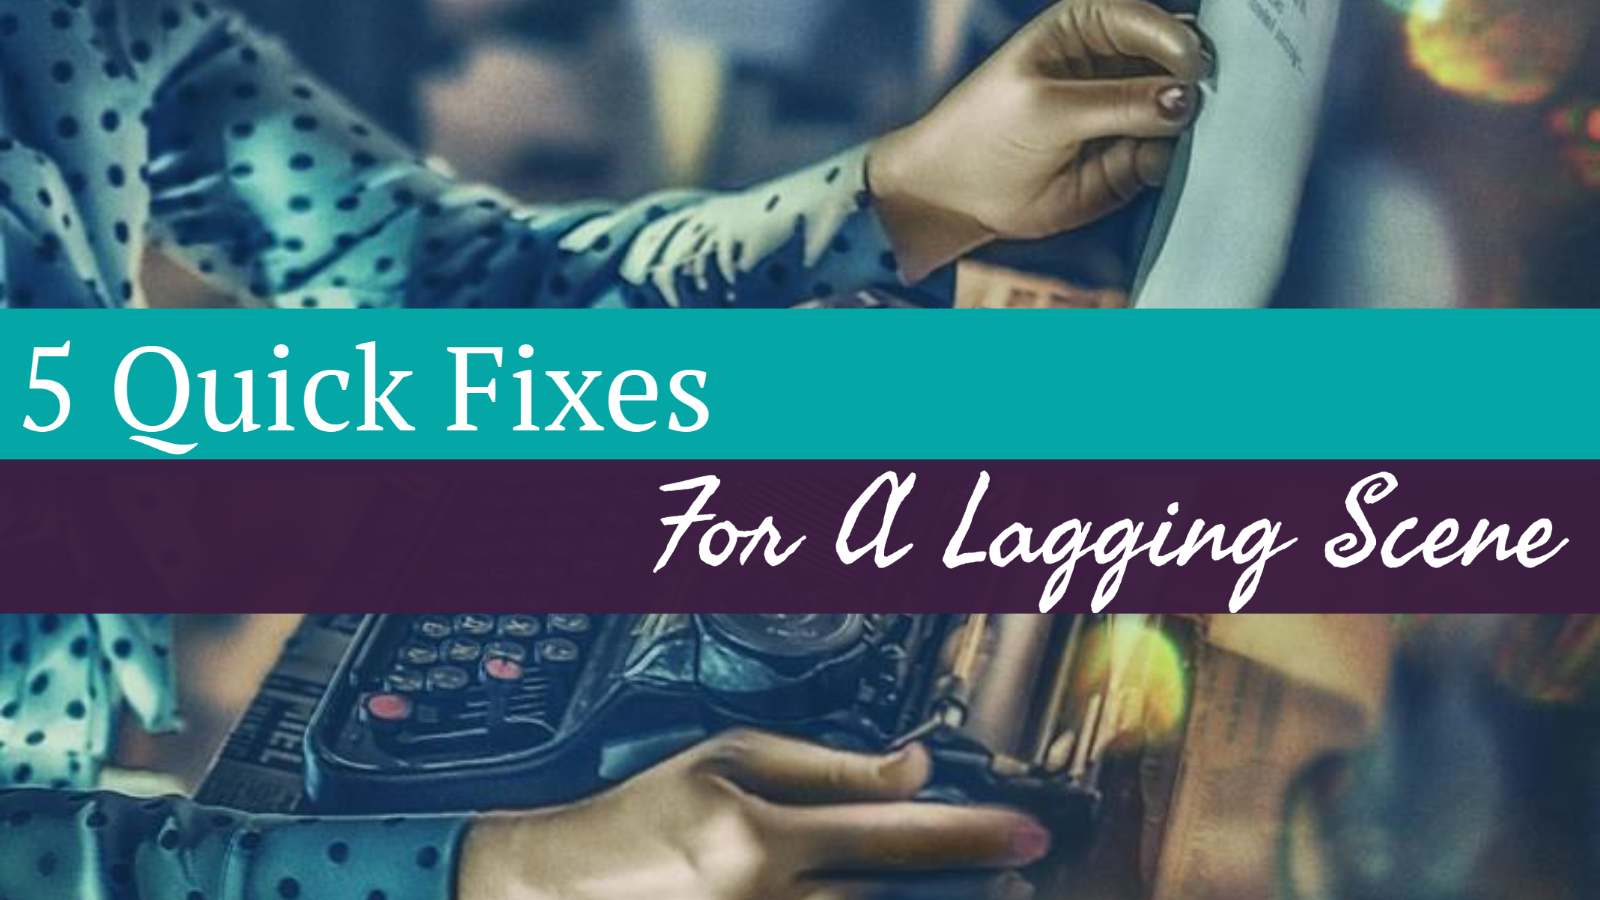 5 Quick Fixes For A Lagging Scene